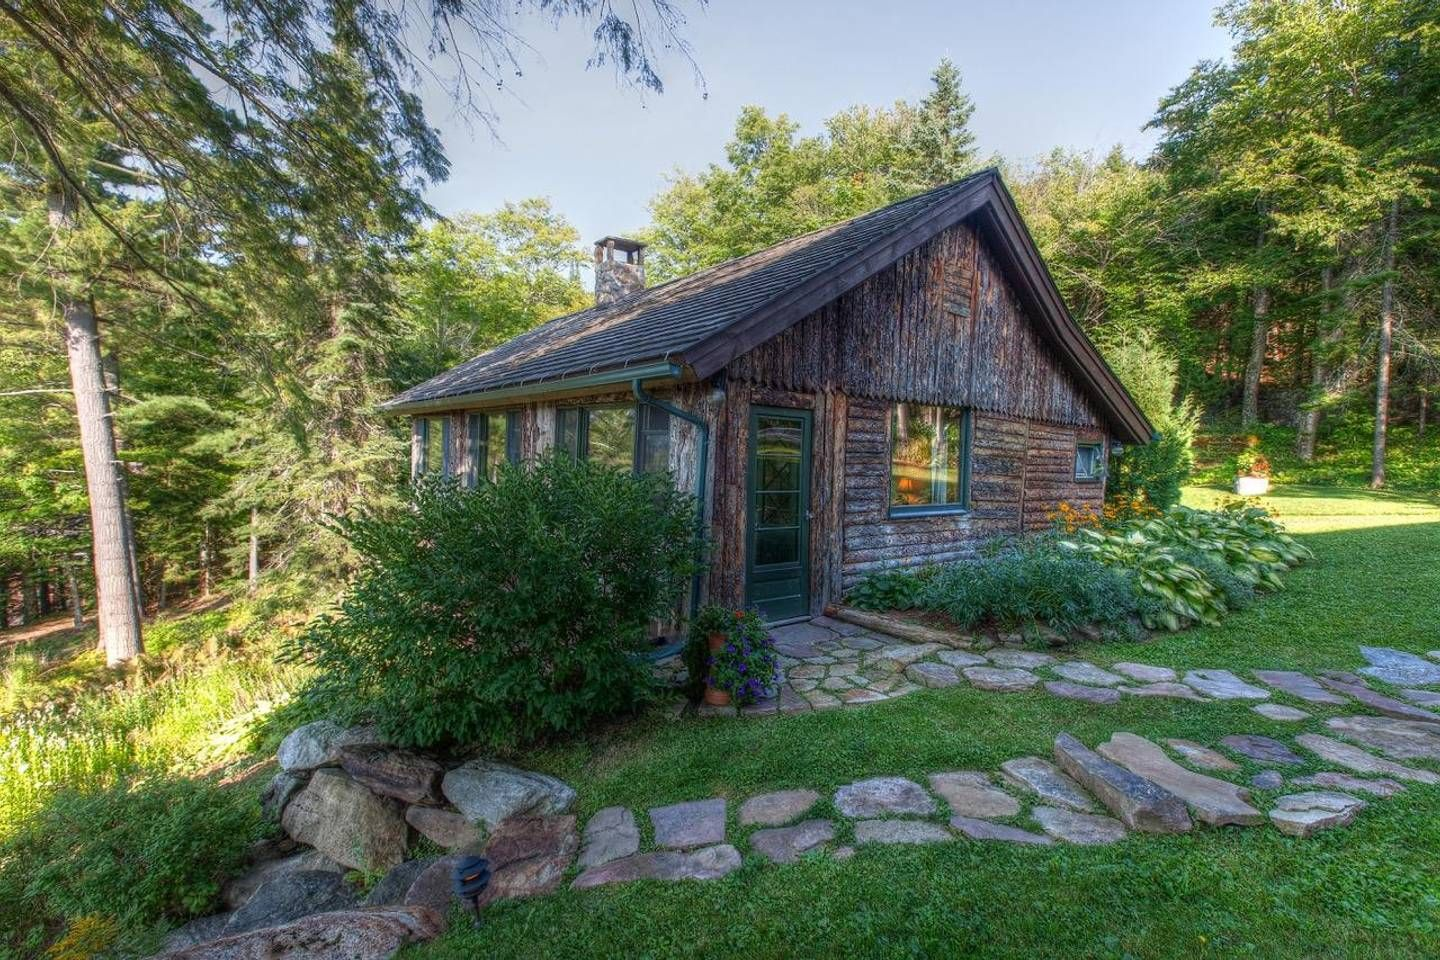 Sunset Cottage At Camp Gordon Cabins For Rent In Lake Placid New York United States Vacation Home Vacation Architect